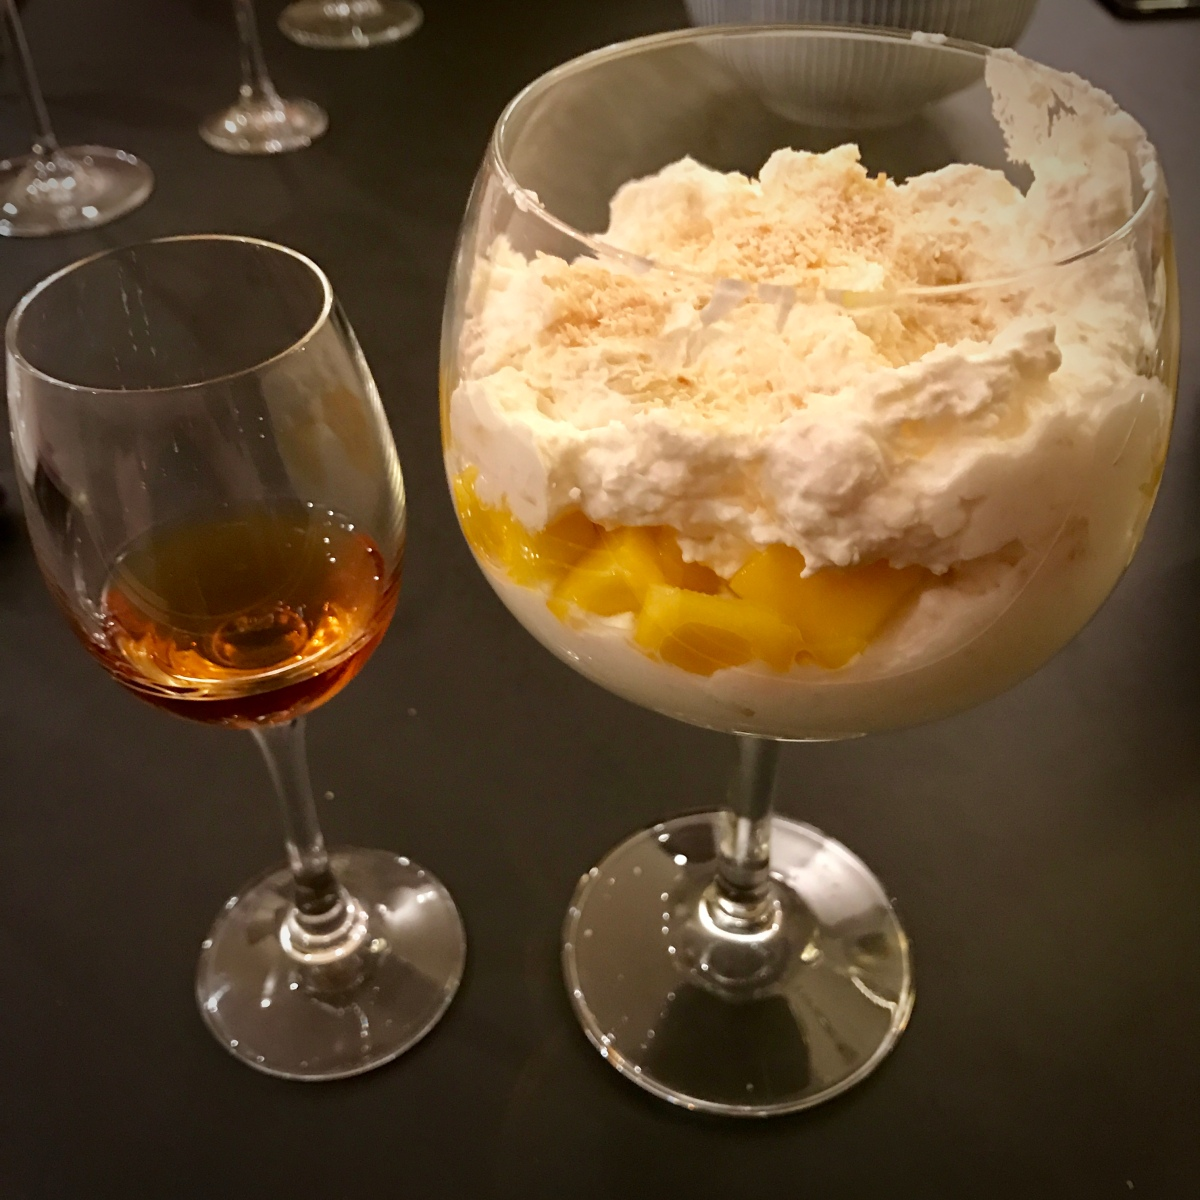 Pineapple, Mango and Coconut Fool